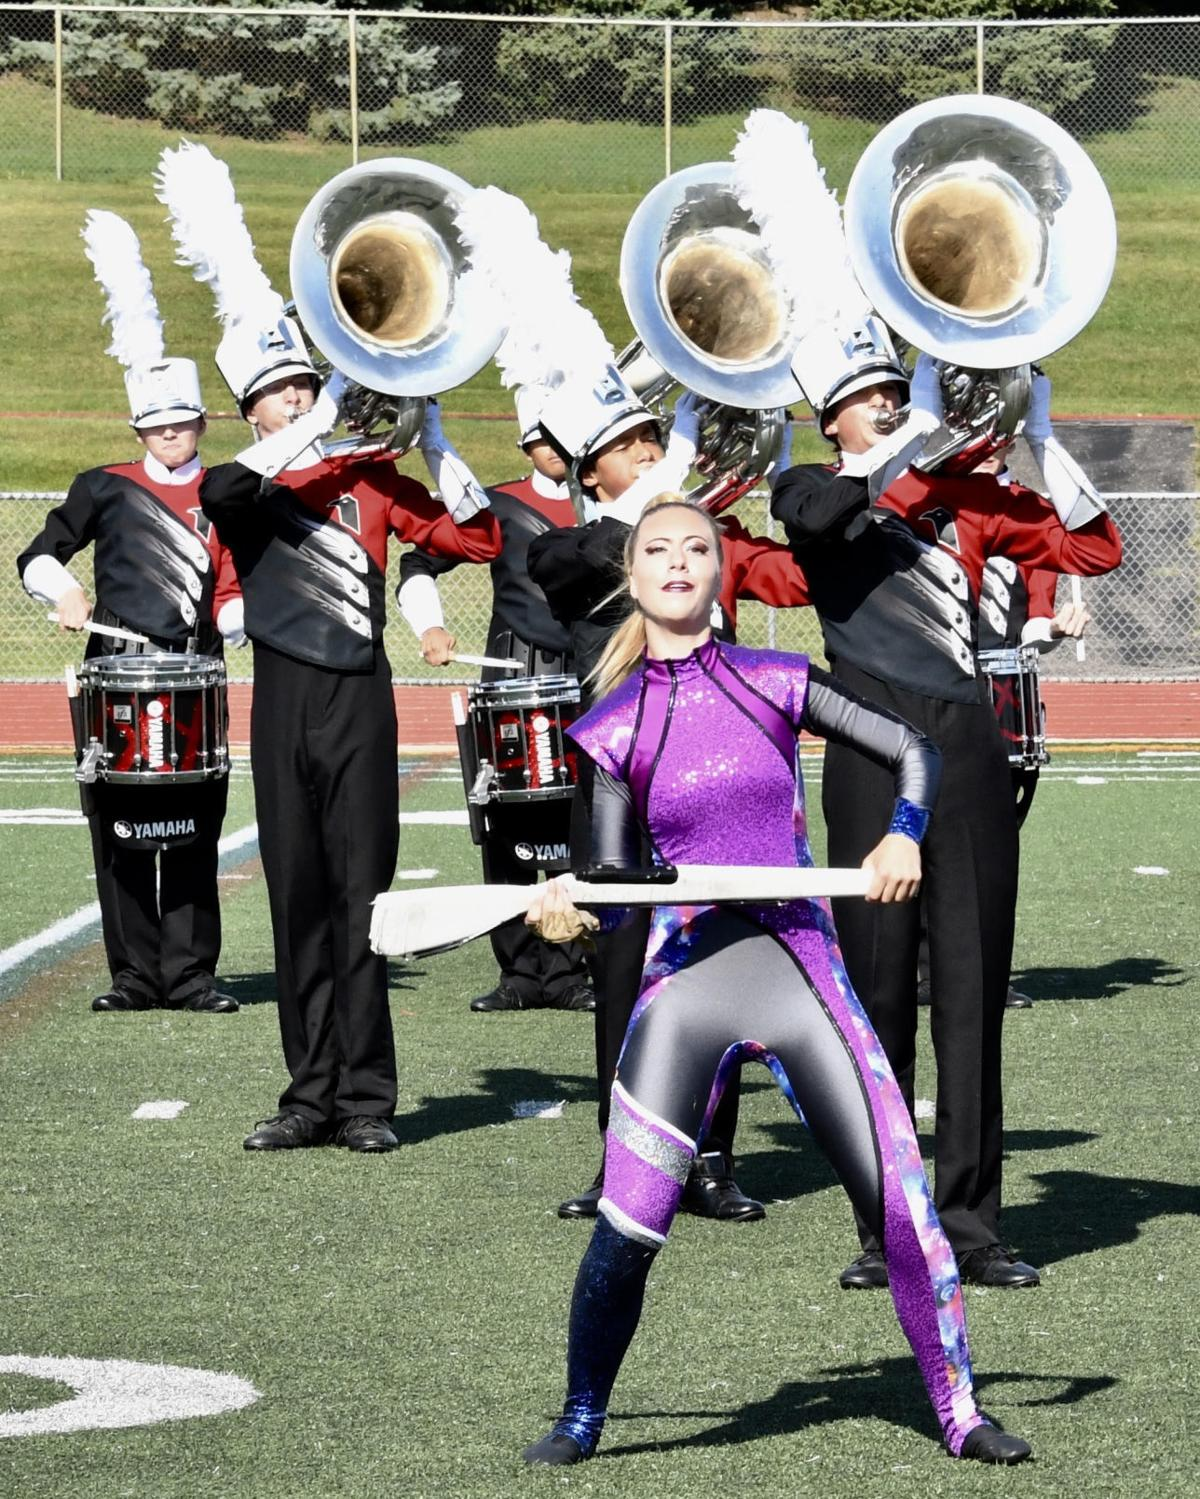 Eden Prairie hosts Prairie Colors Marching Band Festival